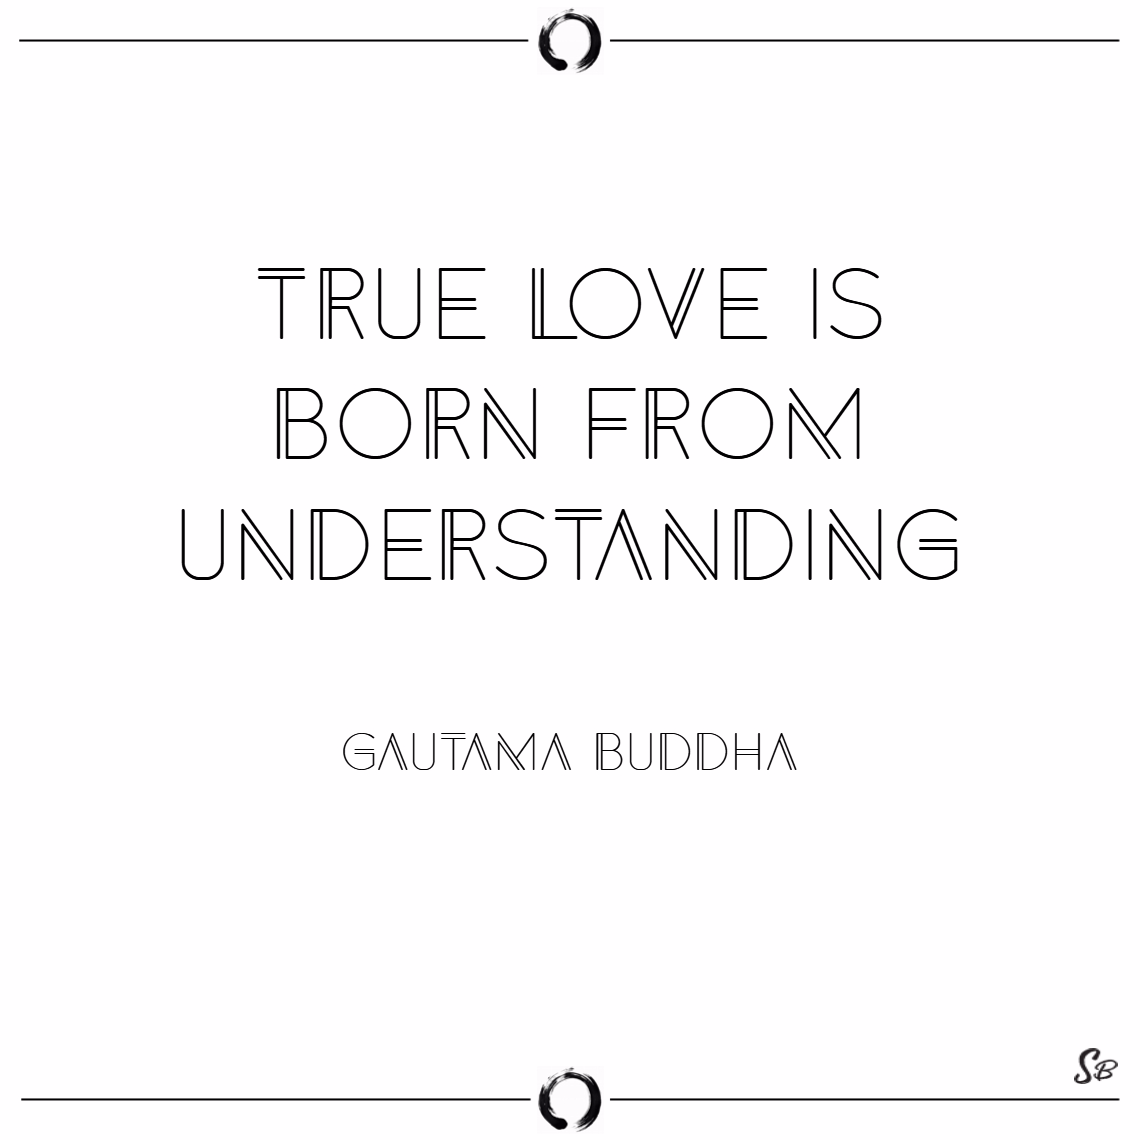 True love is born from understanding. – gautama buddha